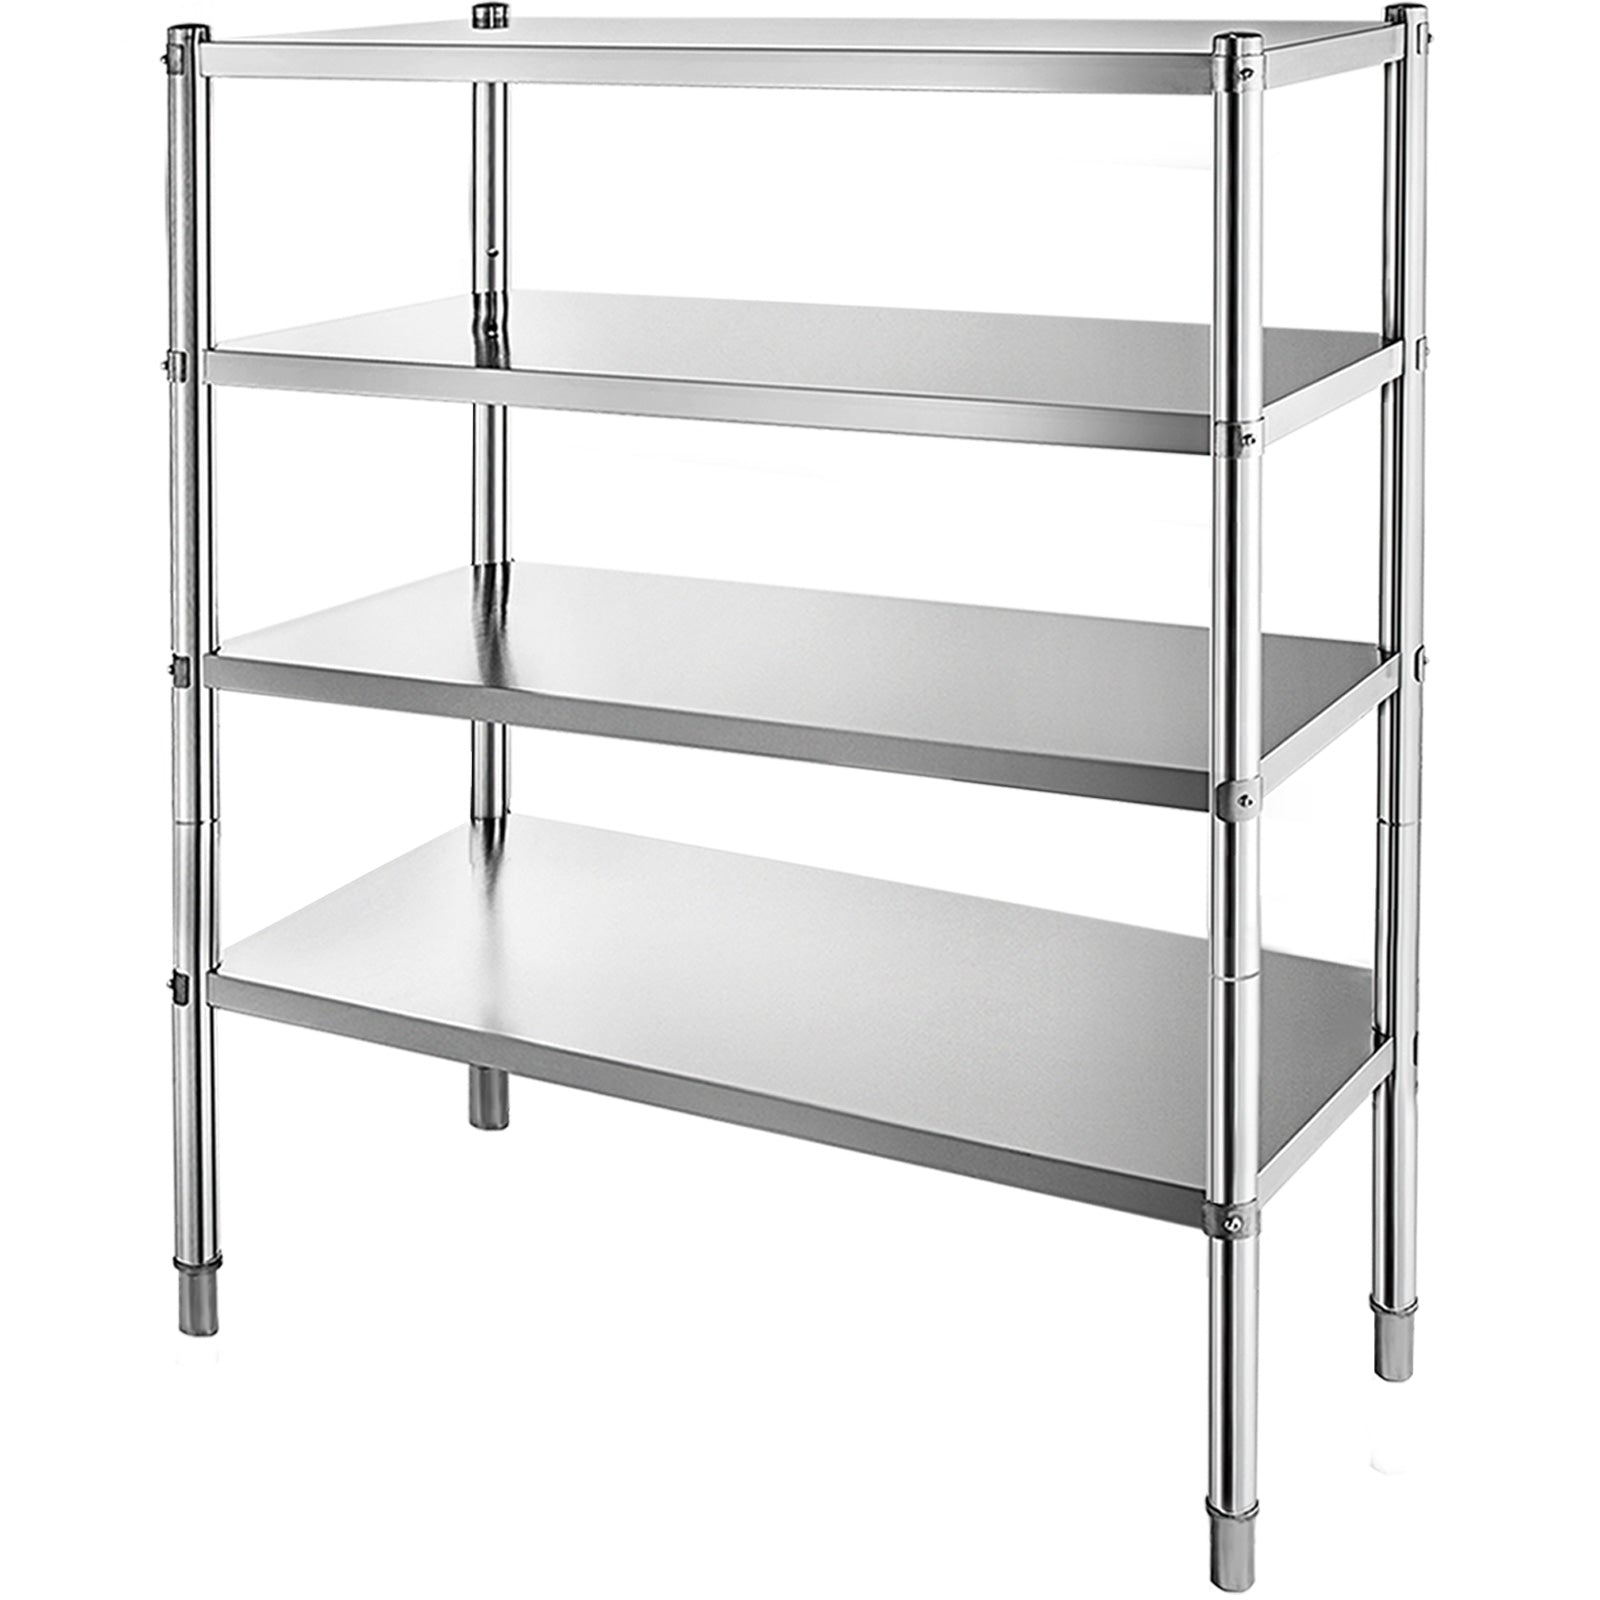 Stainless Steel Kitchen Shelf 4 Tier Shelving Rack Commercial Bathroom Storage